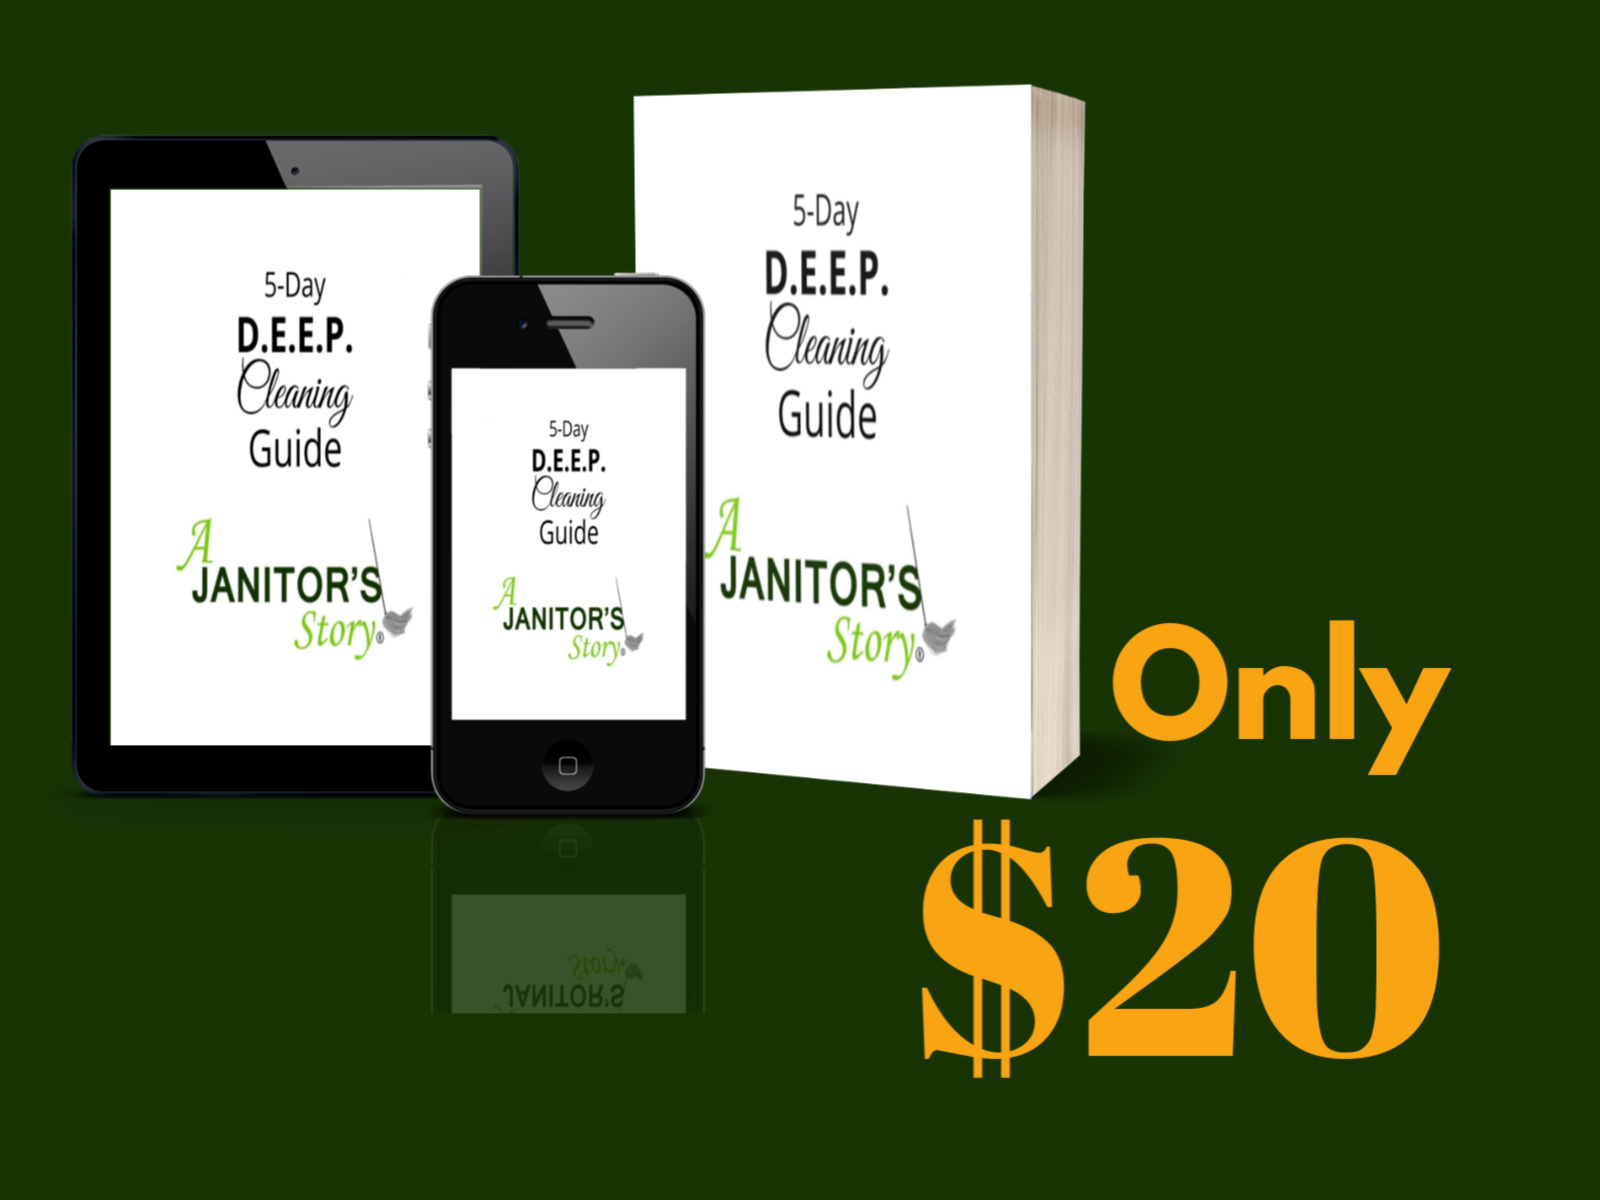 cell phone, tablet, and guidebook for professional deep cleaning